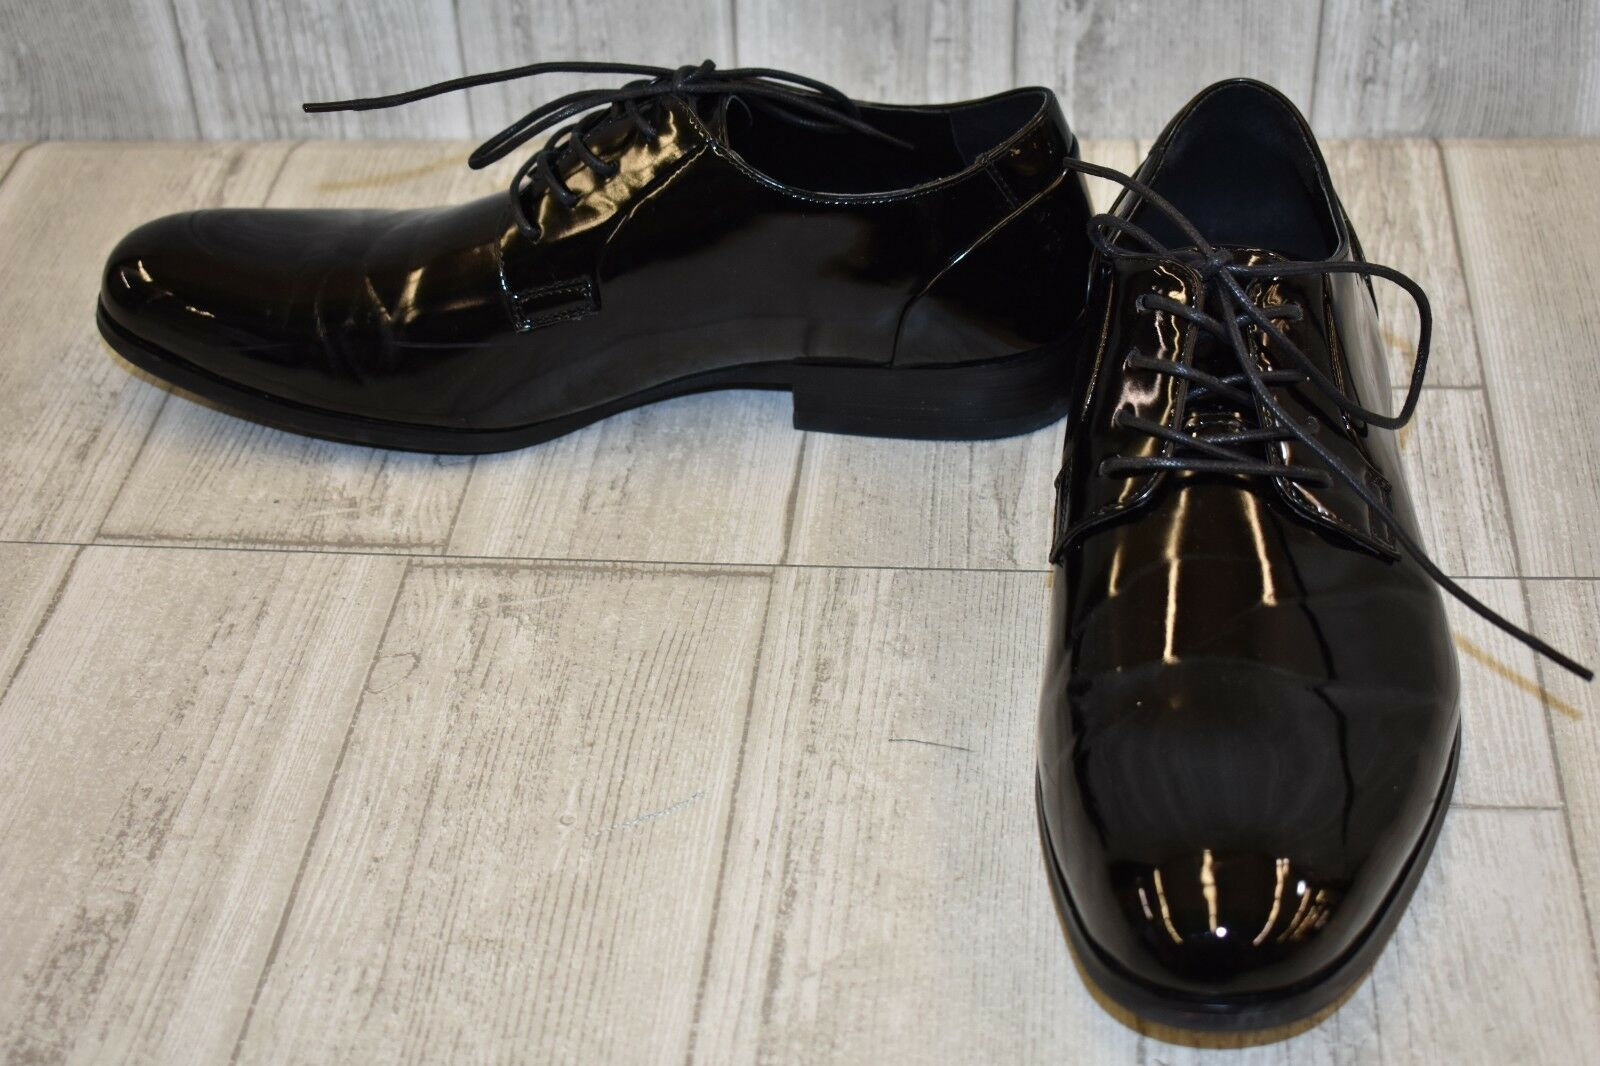 Kenneth Cole Unlisted Heel The World Oxfords - Men's Size 10 M -Black